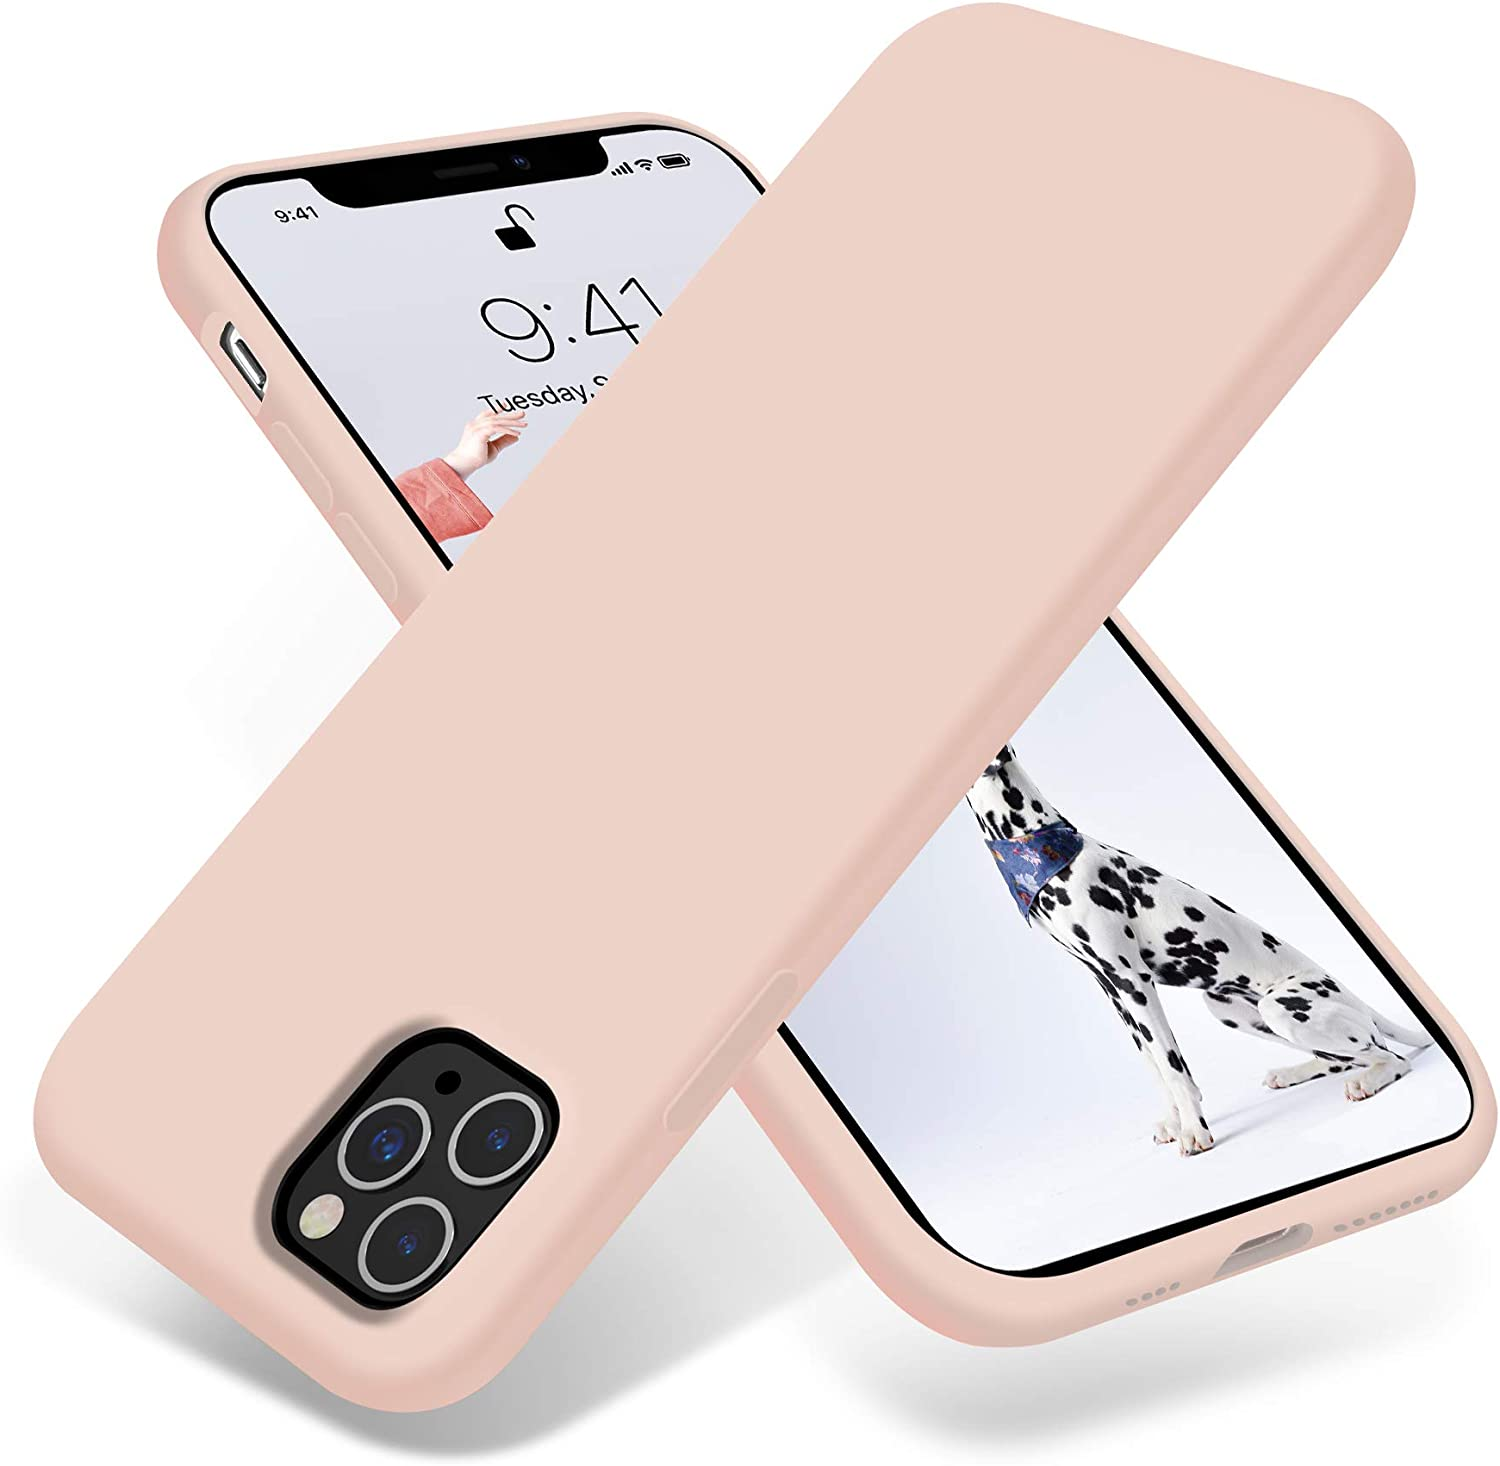 OTOFLY iPhone 11 Pro Max Case,Ultra Slim Fit iPhone Case Liquid Silicone Gel Cover with Full Body Protection Anti-Scratch Shockproof Case Compatible with iPhone 11 Pro Max (Pink)